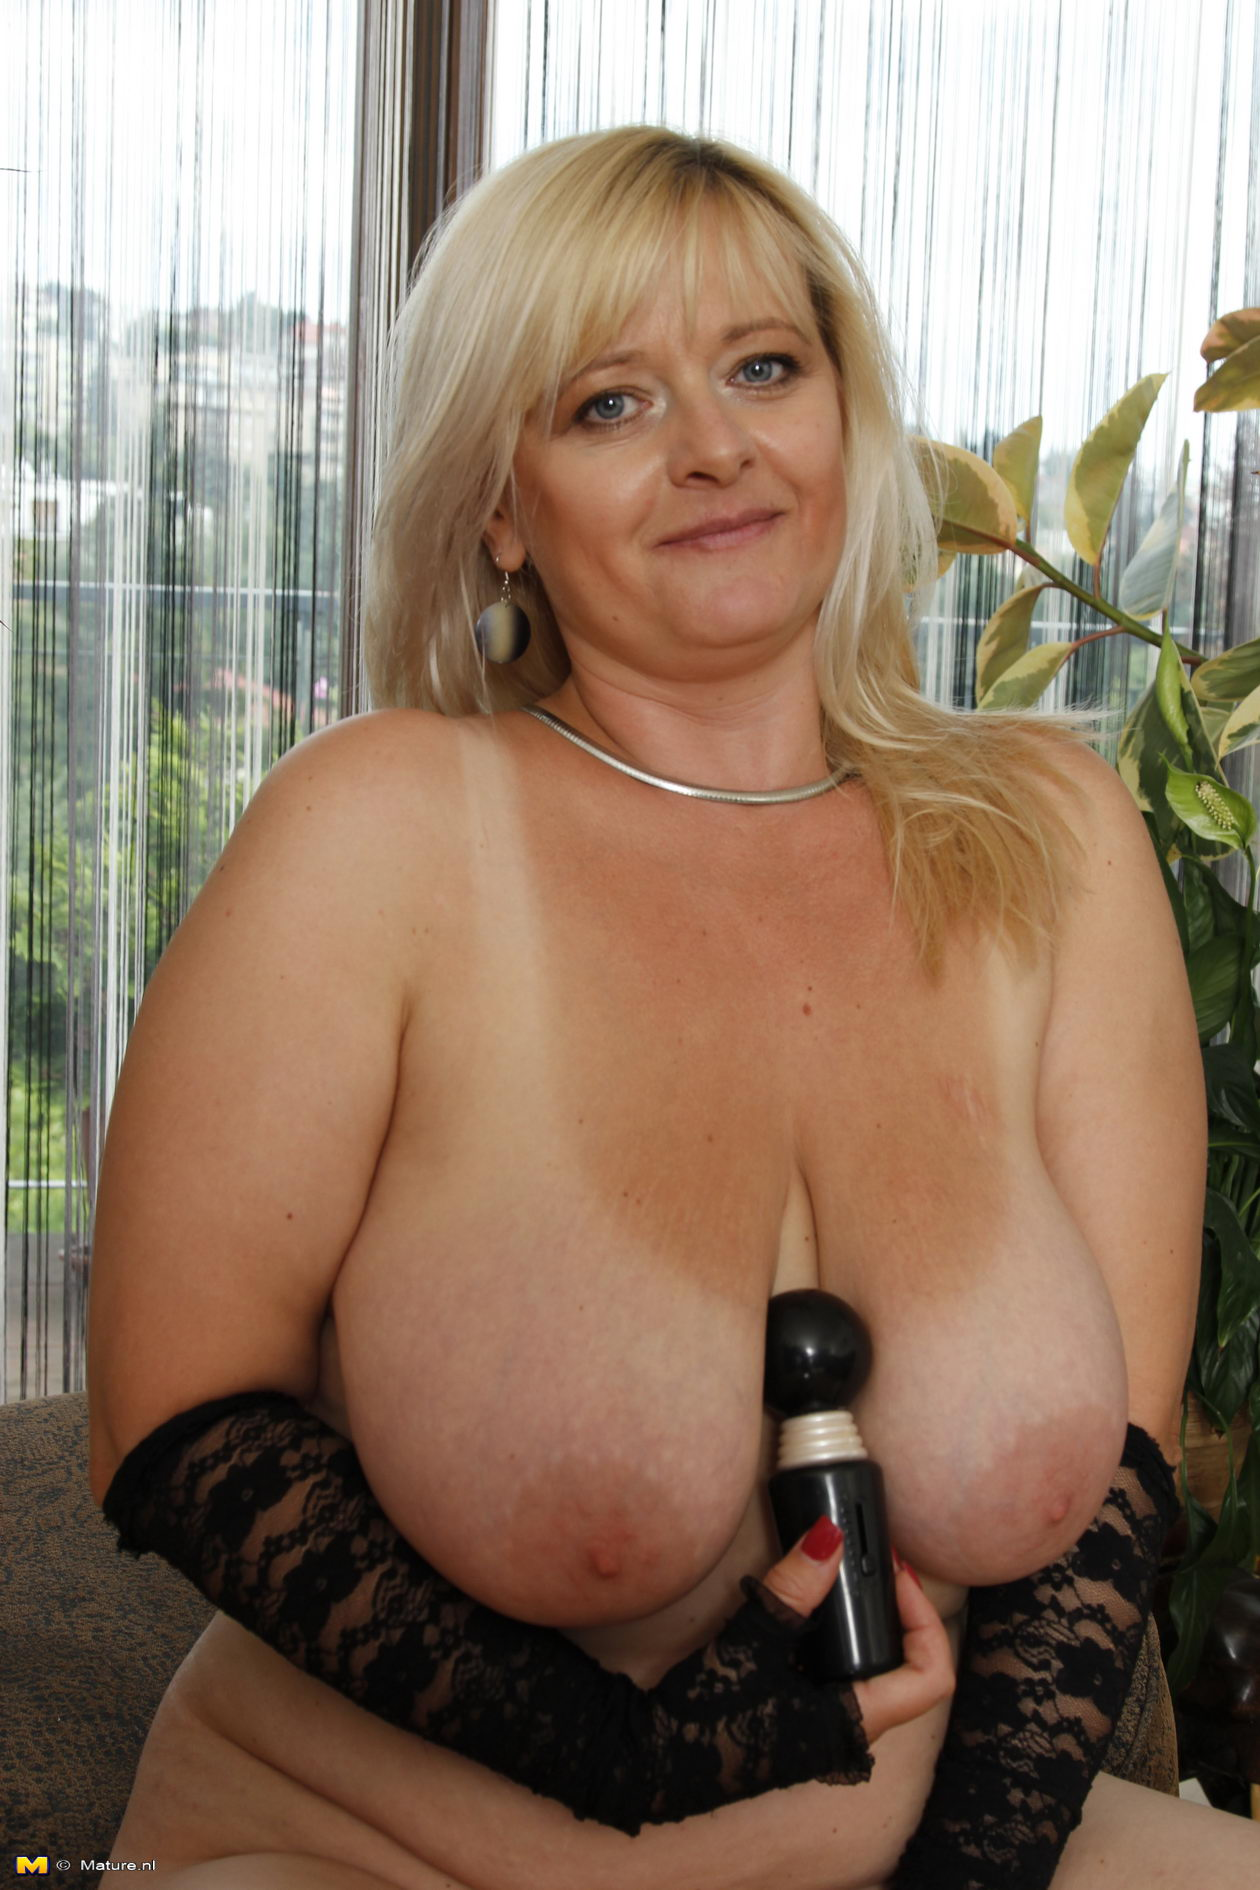 large breasted mature female models